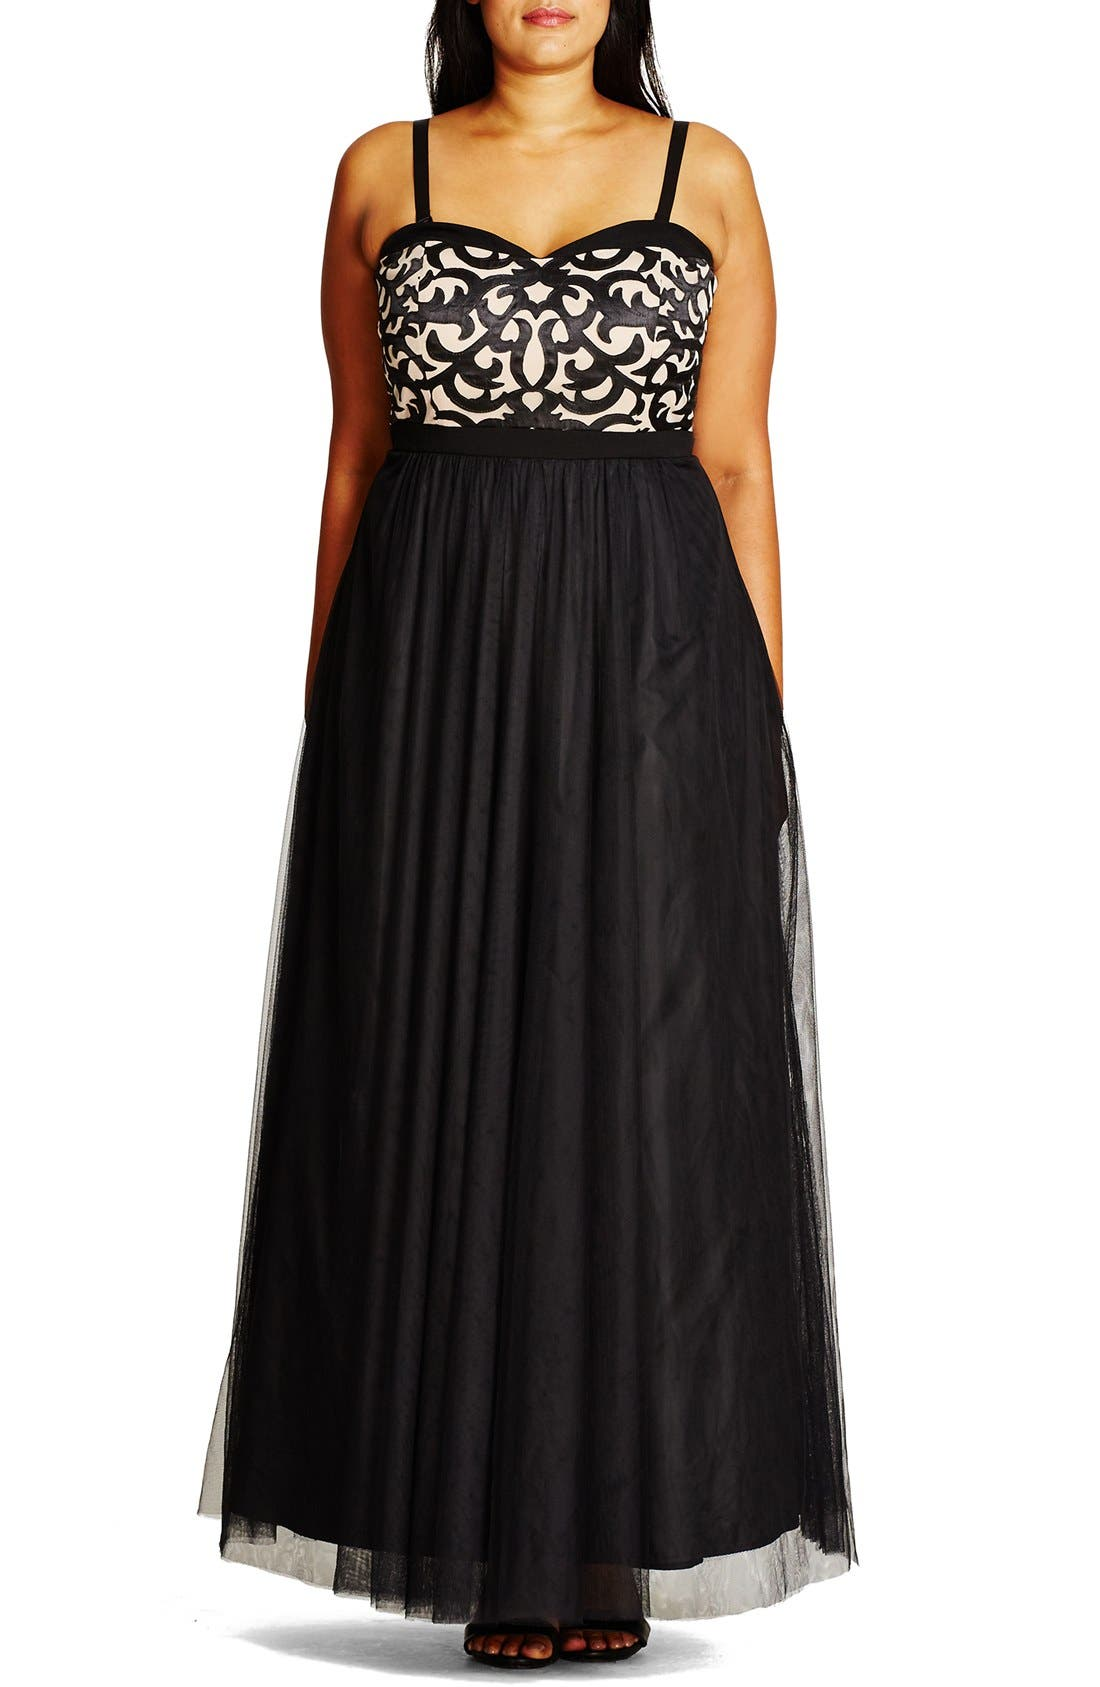 Alternate Image 1 Selected - City Chic 'It Girl' Maxi Dress (Plus Size)